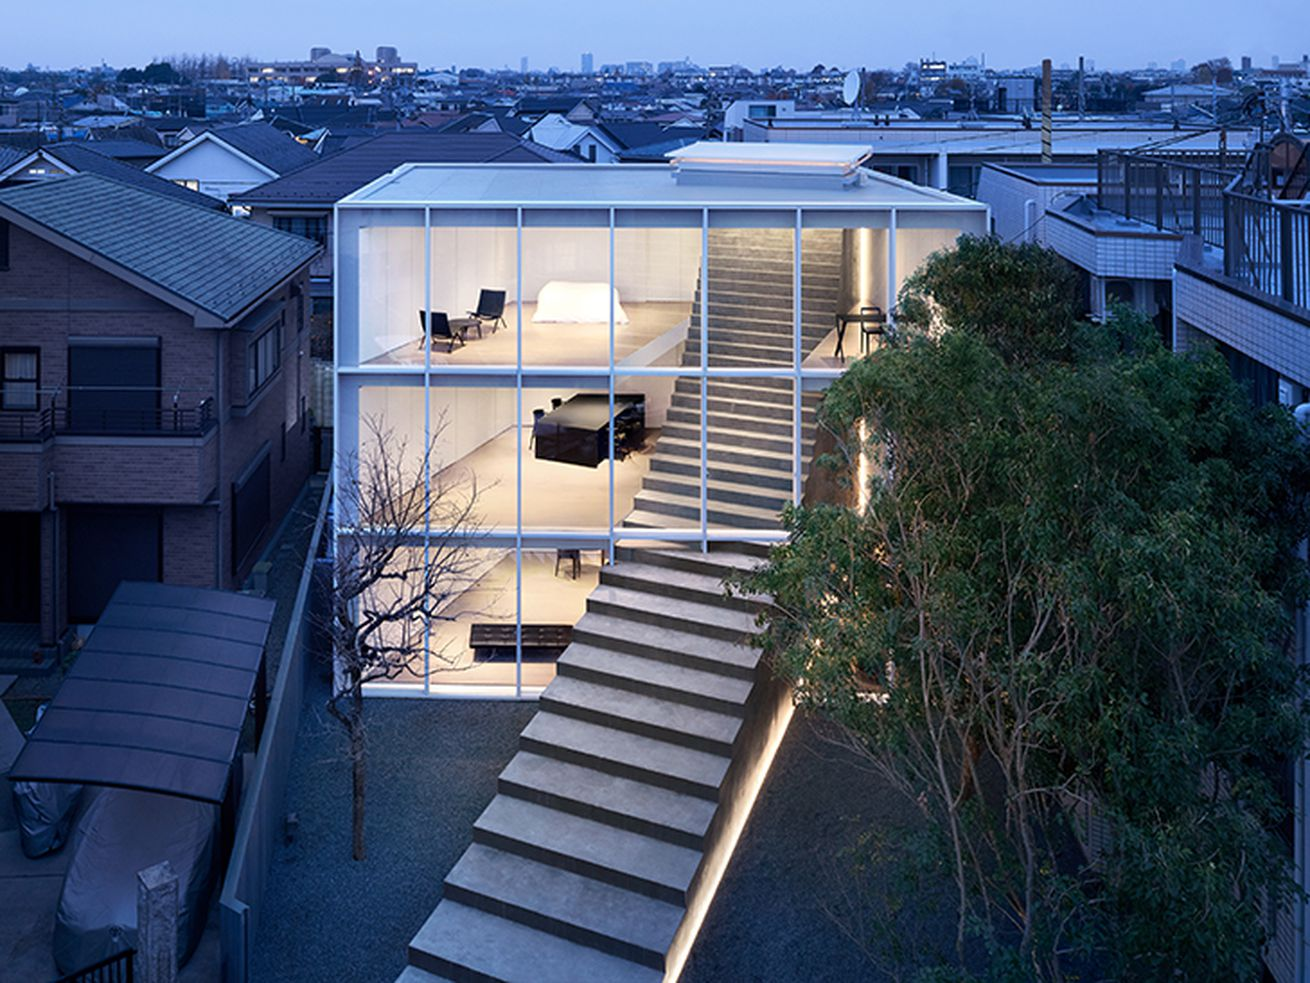 Exterior shot of house lit up at night with a huge staircase running through a glass facade.